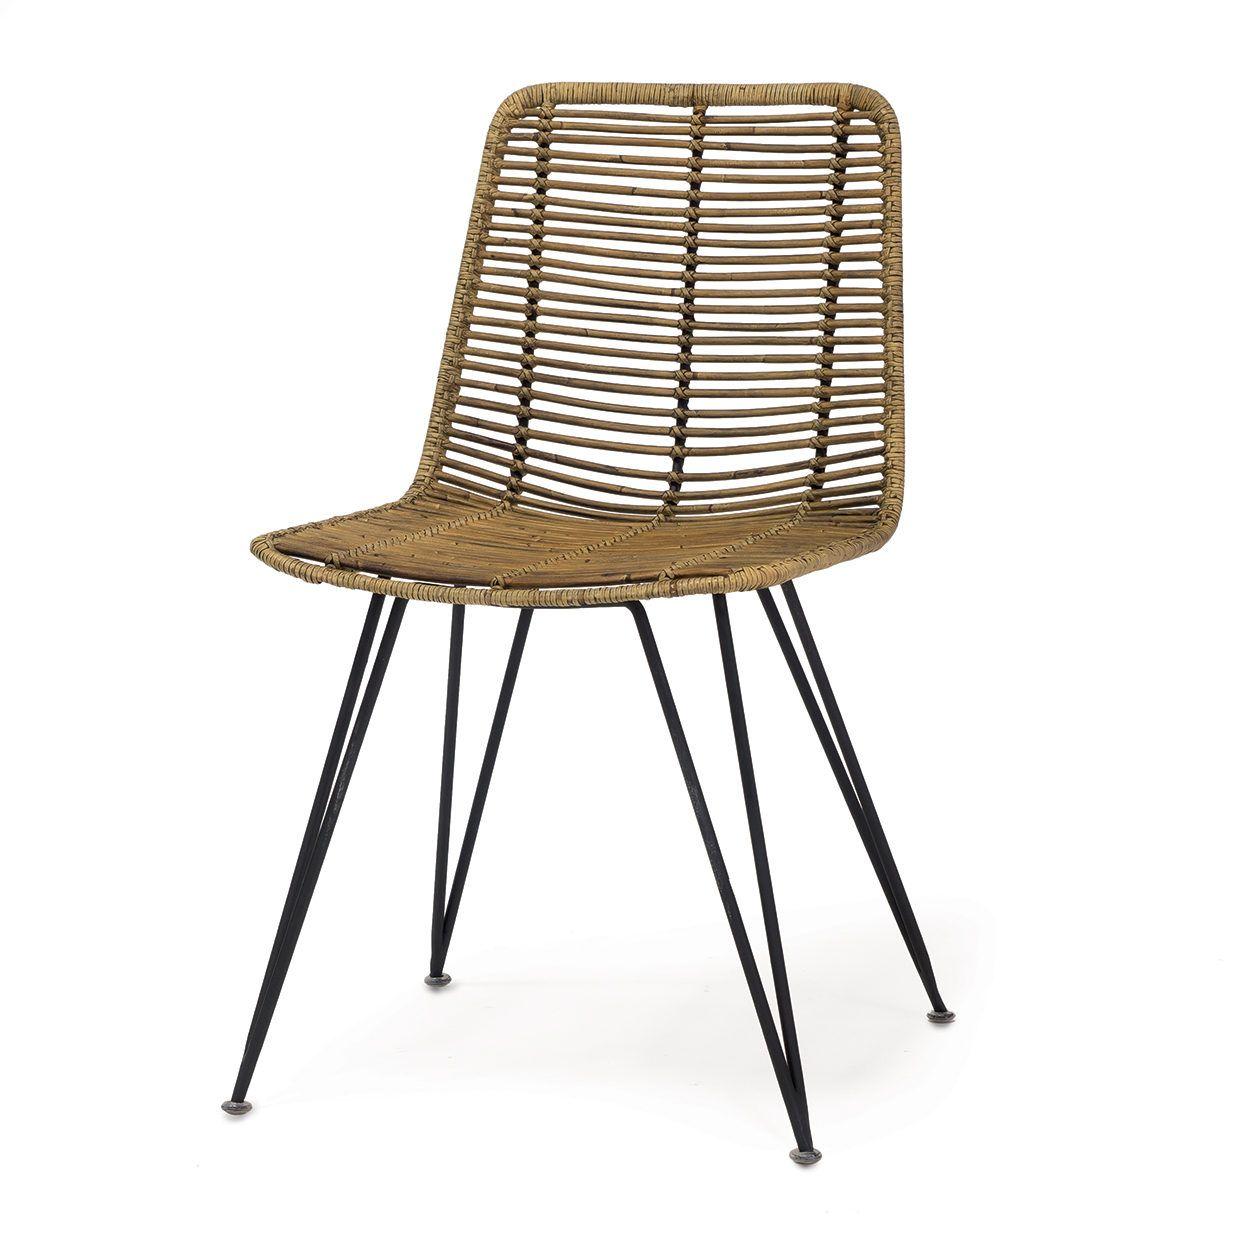 www.palecek.com products 757901 F 02 HERMOSA-SIDE-CHAIR-NATURAL